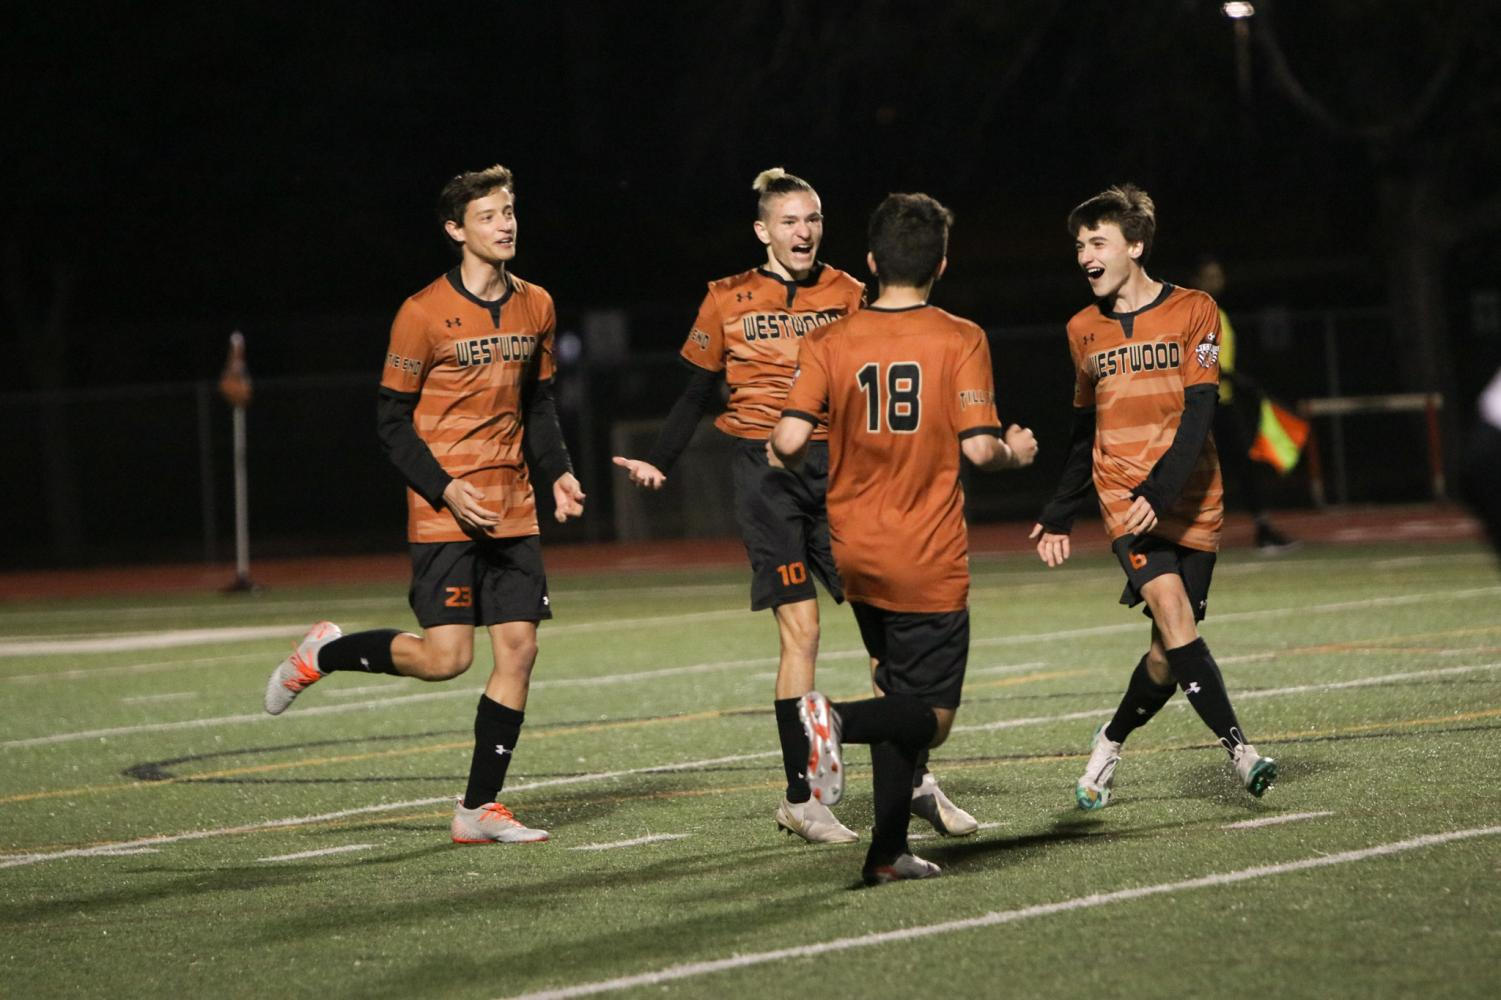 The+Warriors+celebrate+after+Niko+Harris+%2720+scores+a+goal.+This+was+the+final+goal+of+the+night%2C+making+the+score+3-0.